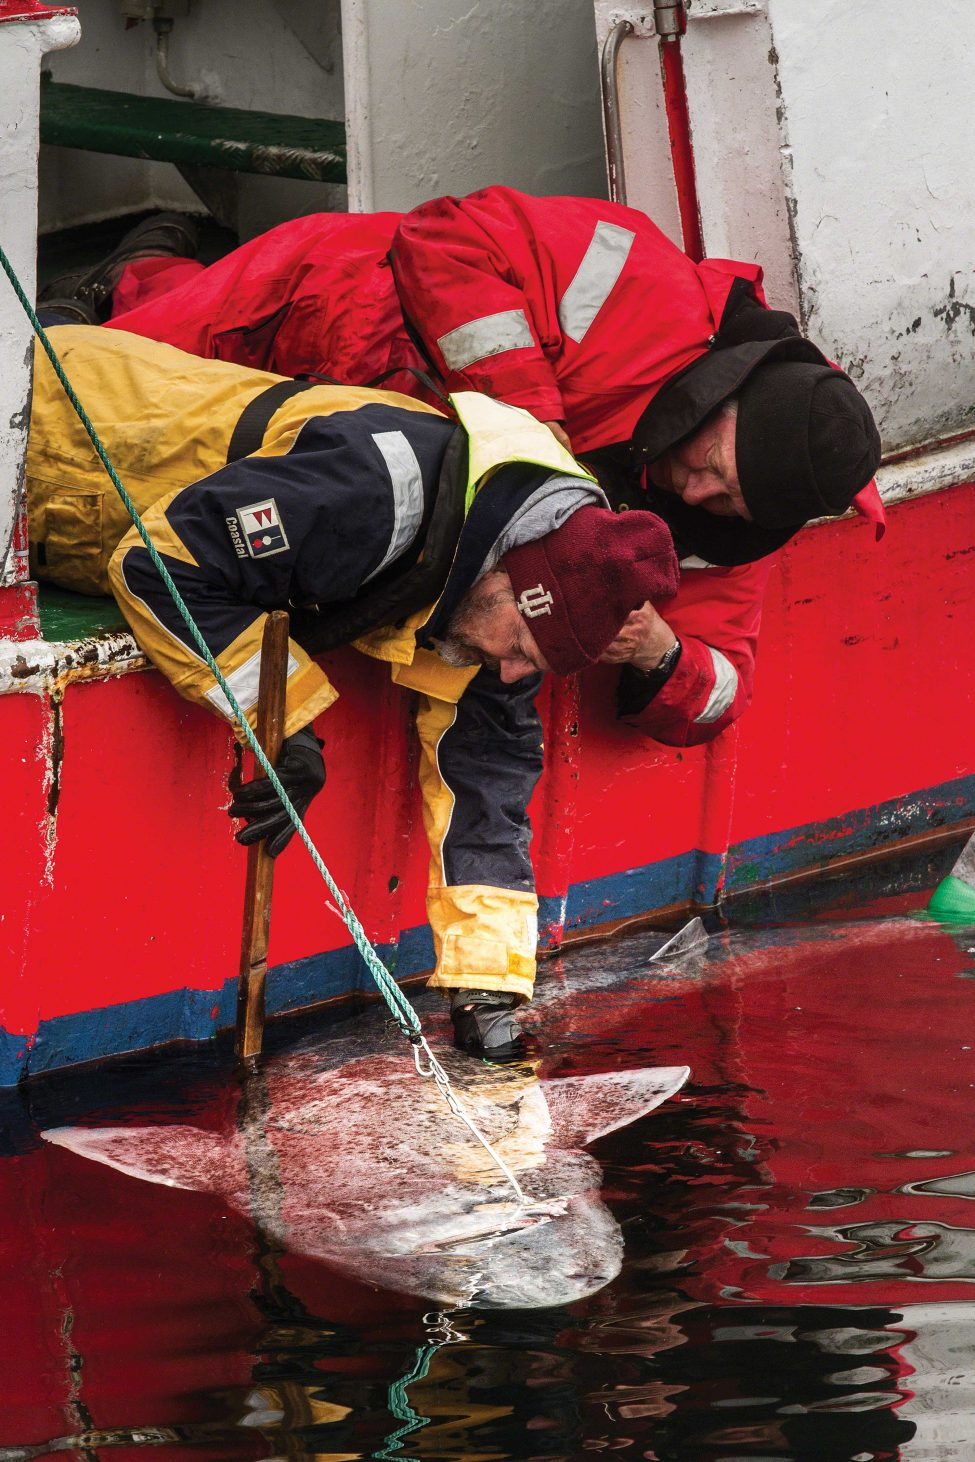 Peter Bushnell leans out of the research vessel to unhook an upside-down Greenland shark.<br /> Photo by Lucas Santucci | Under the Pole